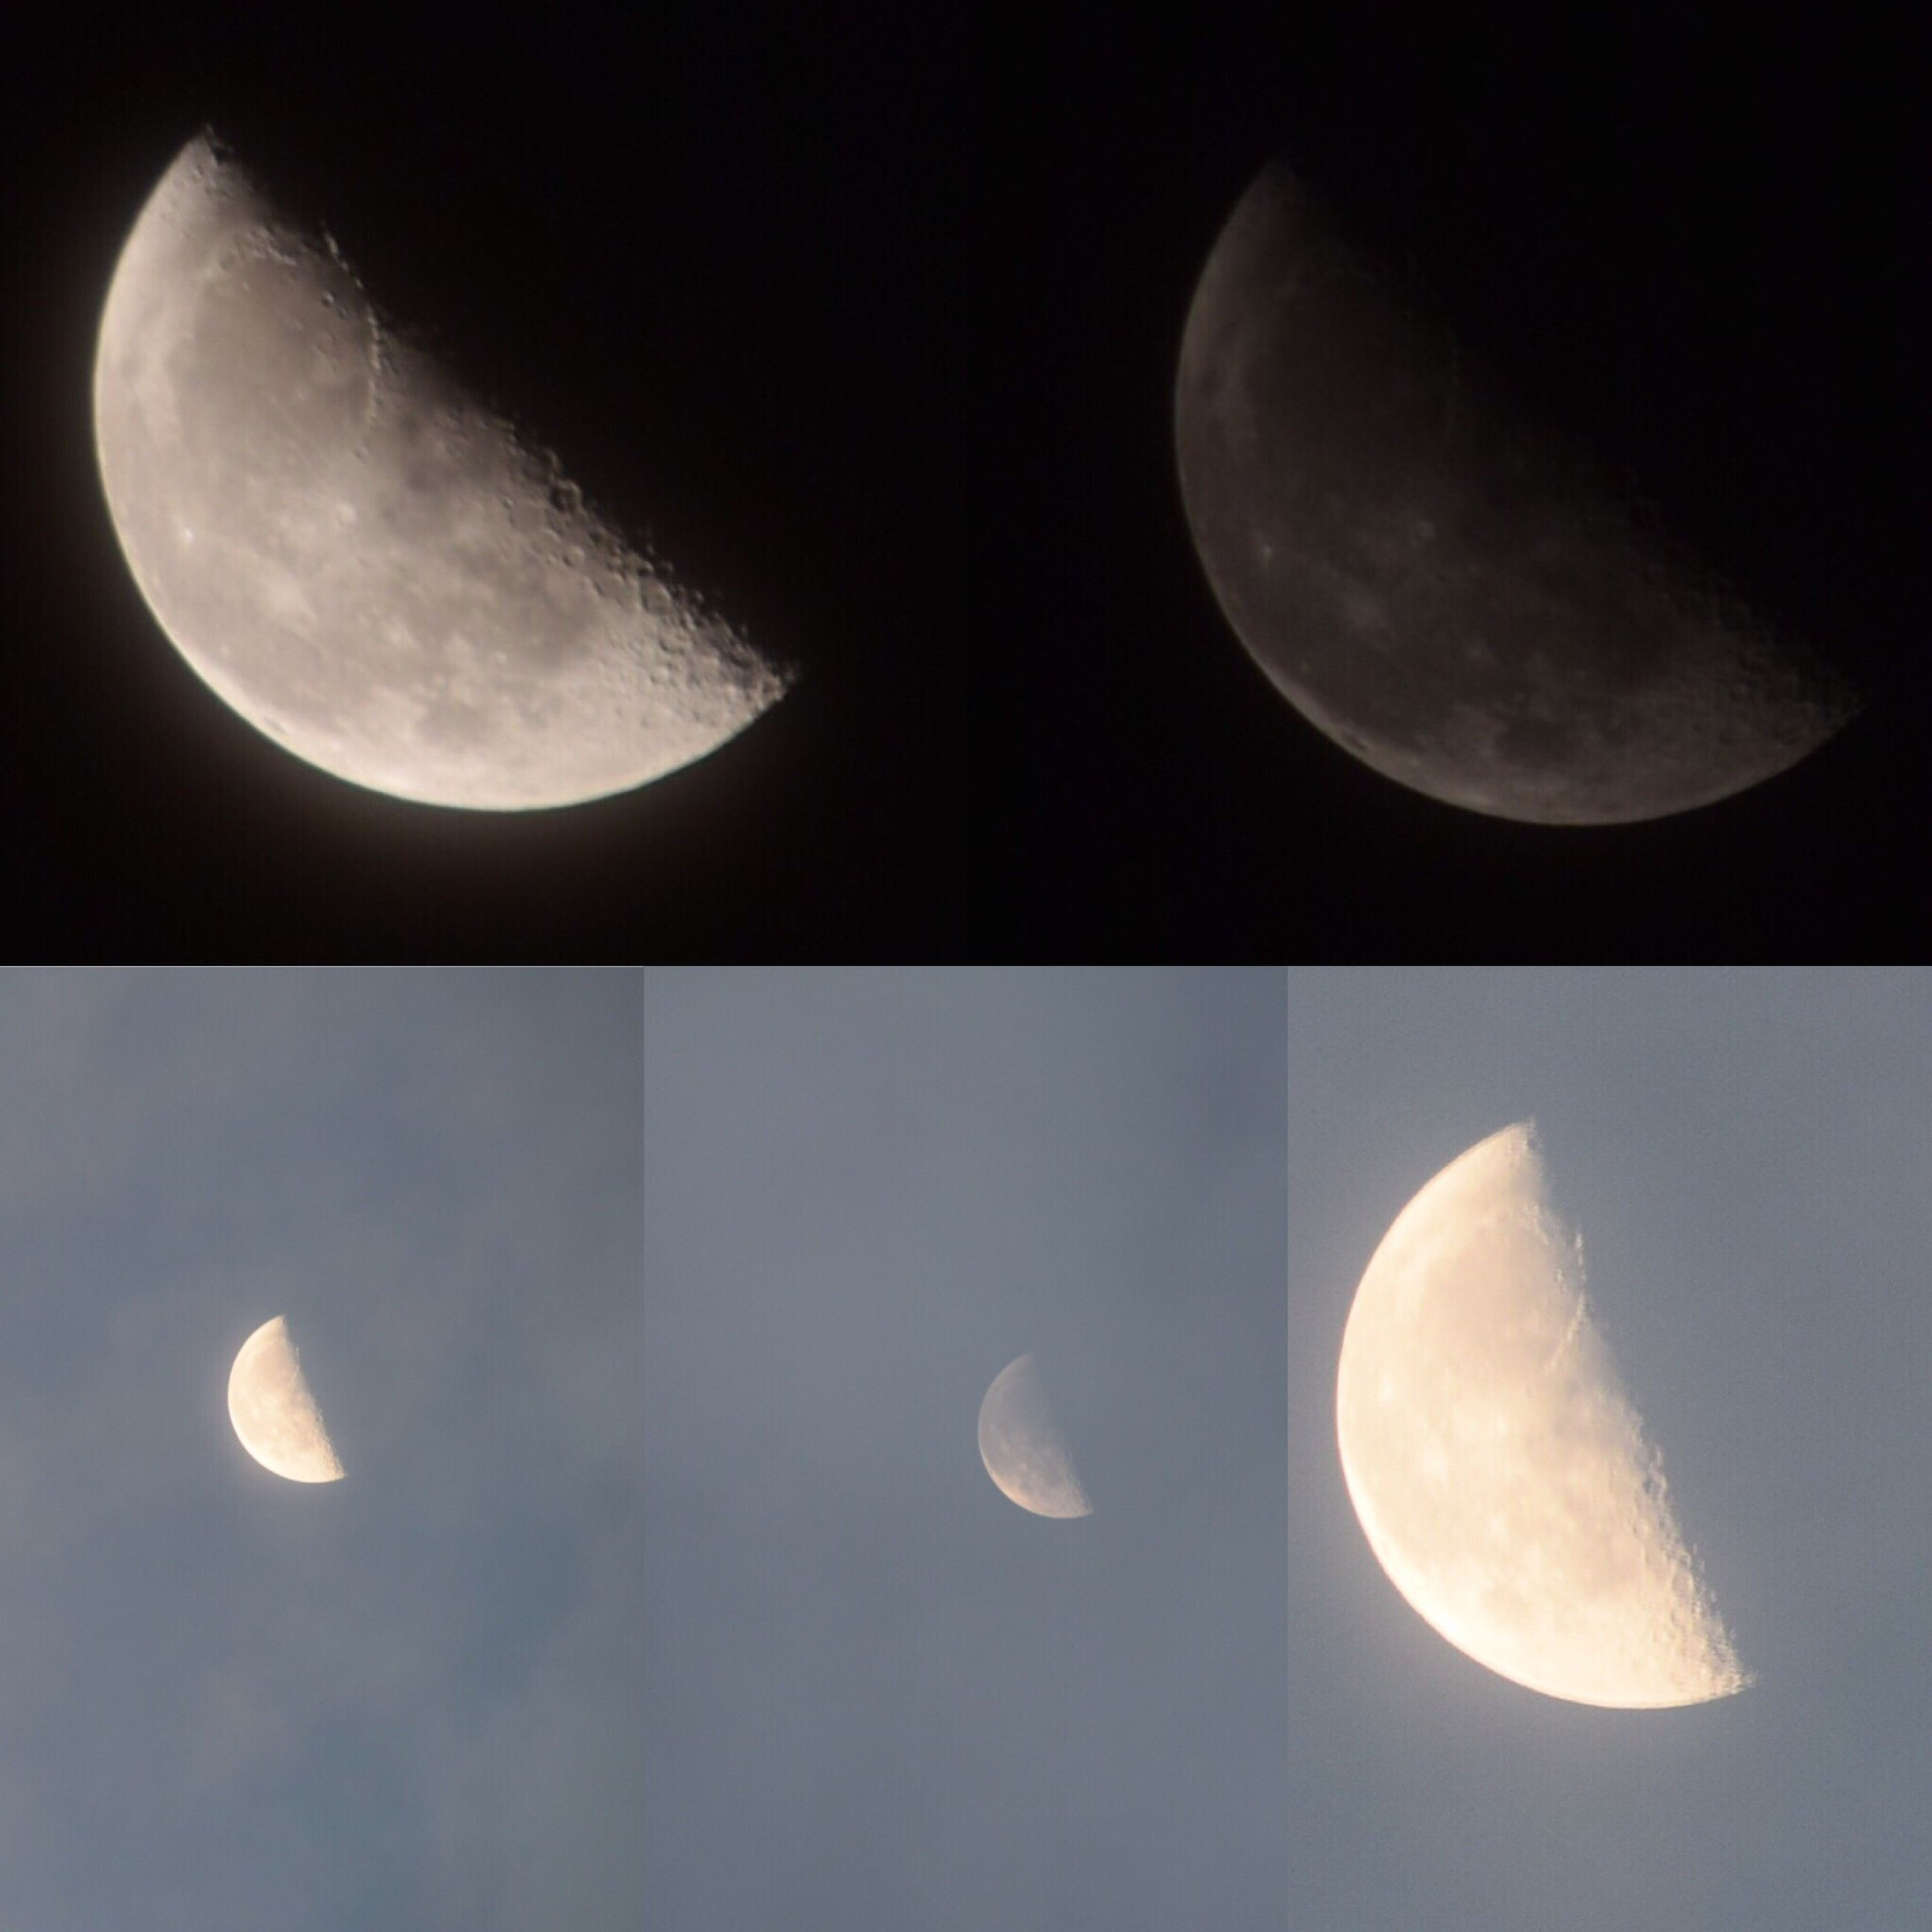 moon, astronomy, night, full moon, space exploration, circle, planetary moon, exploration, majestic, scenics, space, discovery, beauty in nature, multiple image, moon surface, sphere, tranquil scene, sky, mystery, glowing, tranquility, science, circular, dark, outdoors, nature, natural phenomenon, dreamlike, moonlight